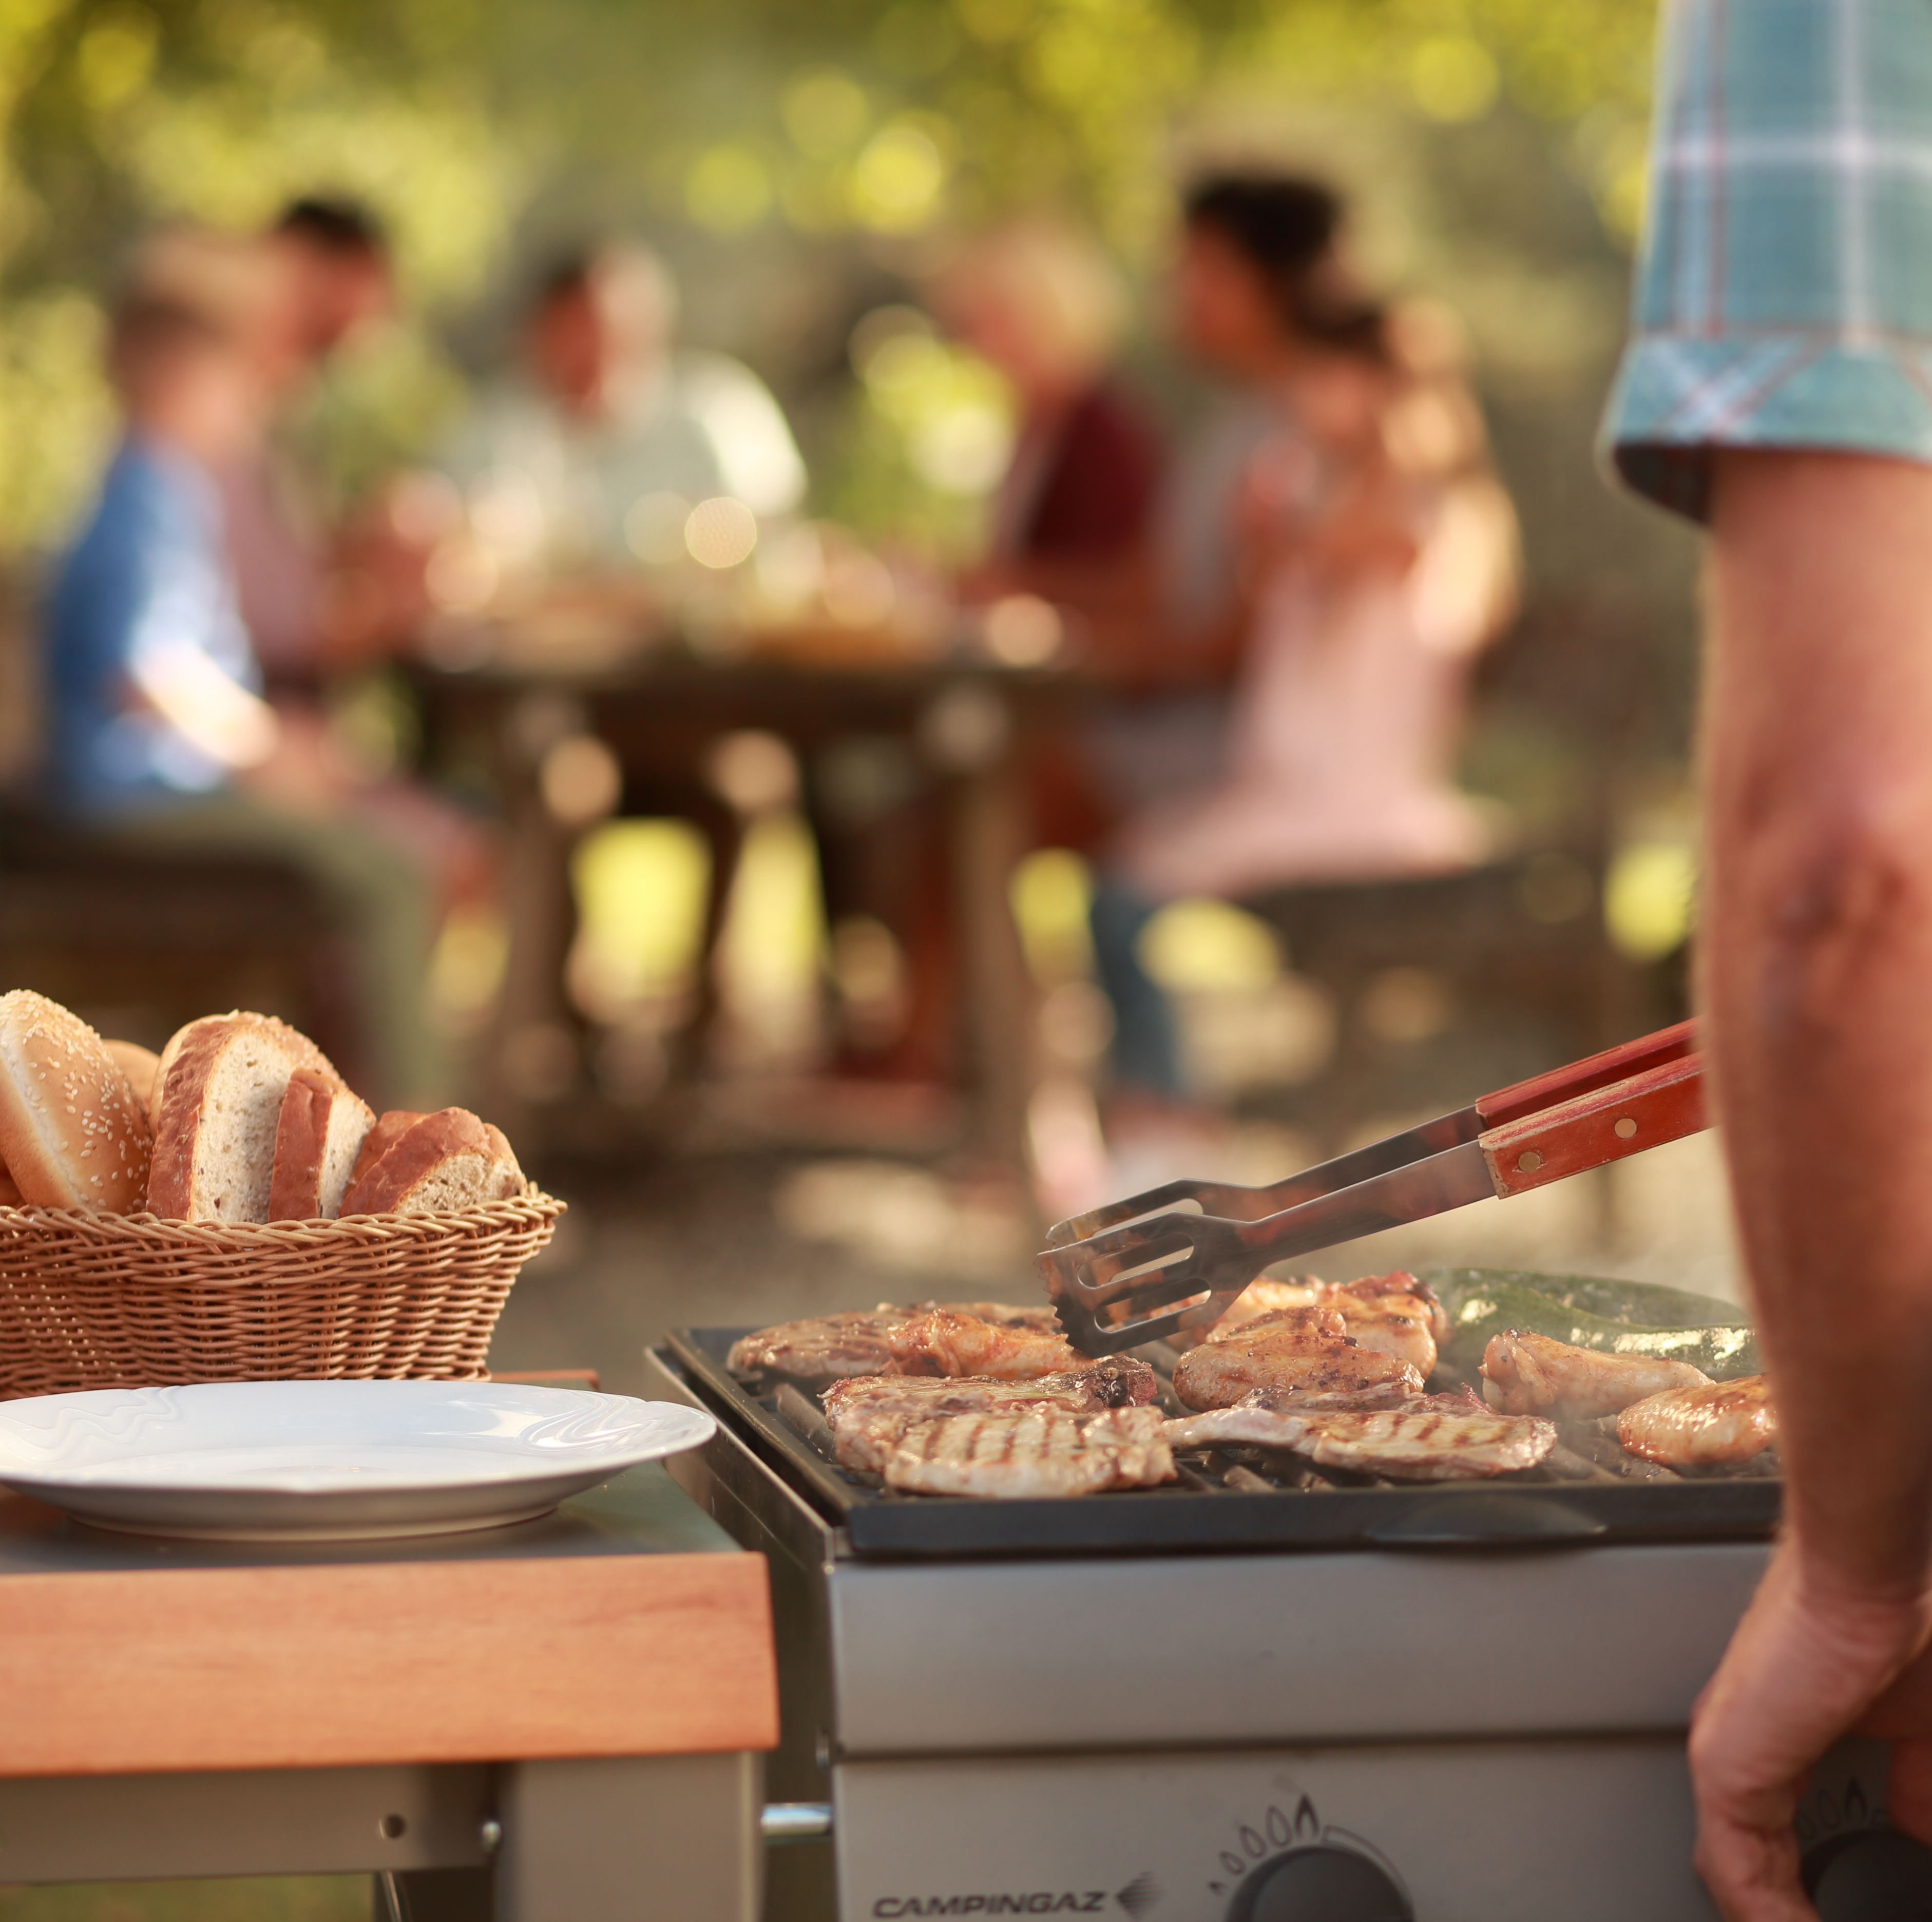 The best way to clean your barbecue